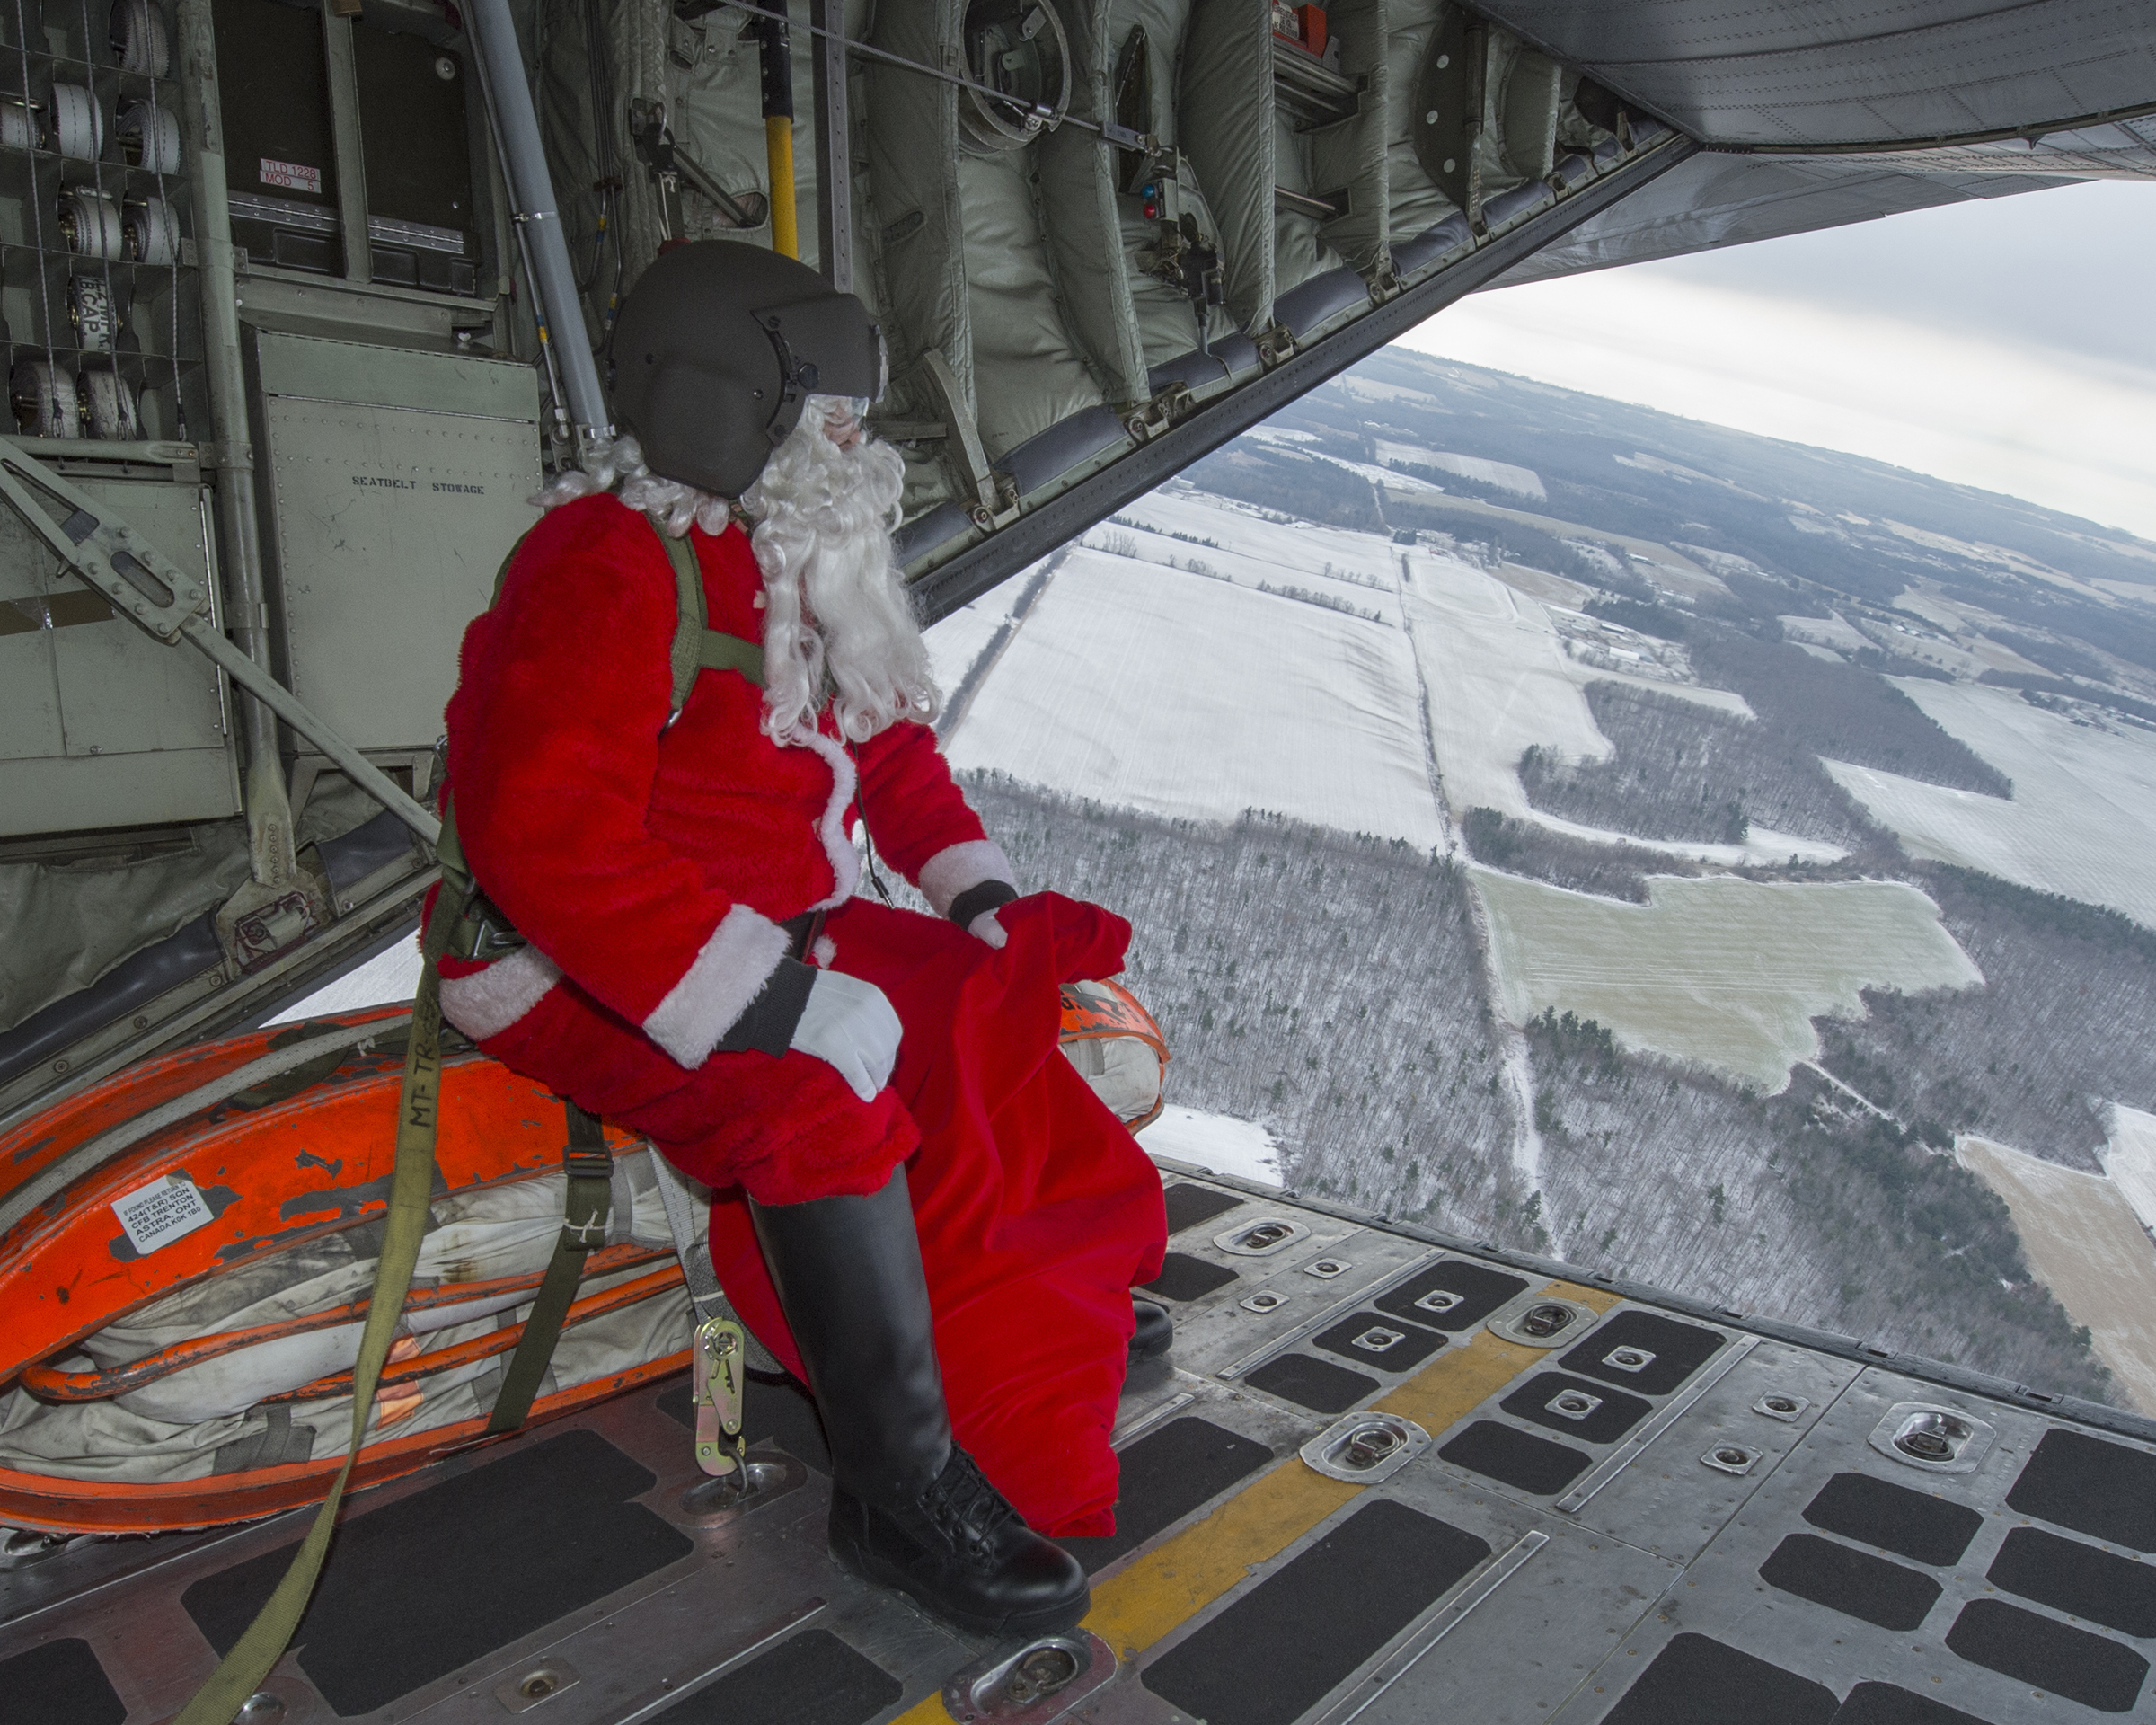 Santa sits on the open ramp of a CC-130H Hercules aircraft from 424 Transport and Rescue Squadron, thinking all the children he will visit in the Quinte area on the evening of December 24. PHOTO: Leading Seaman Dan Bard, TN09-2018-0441-099